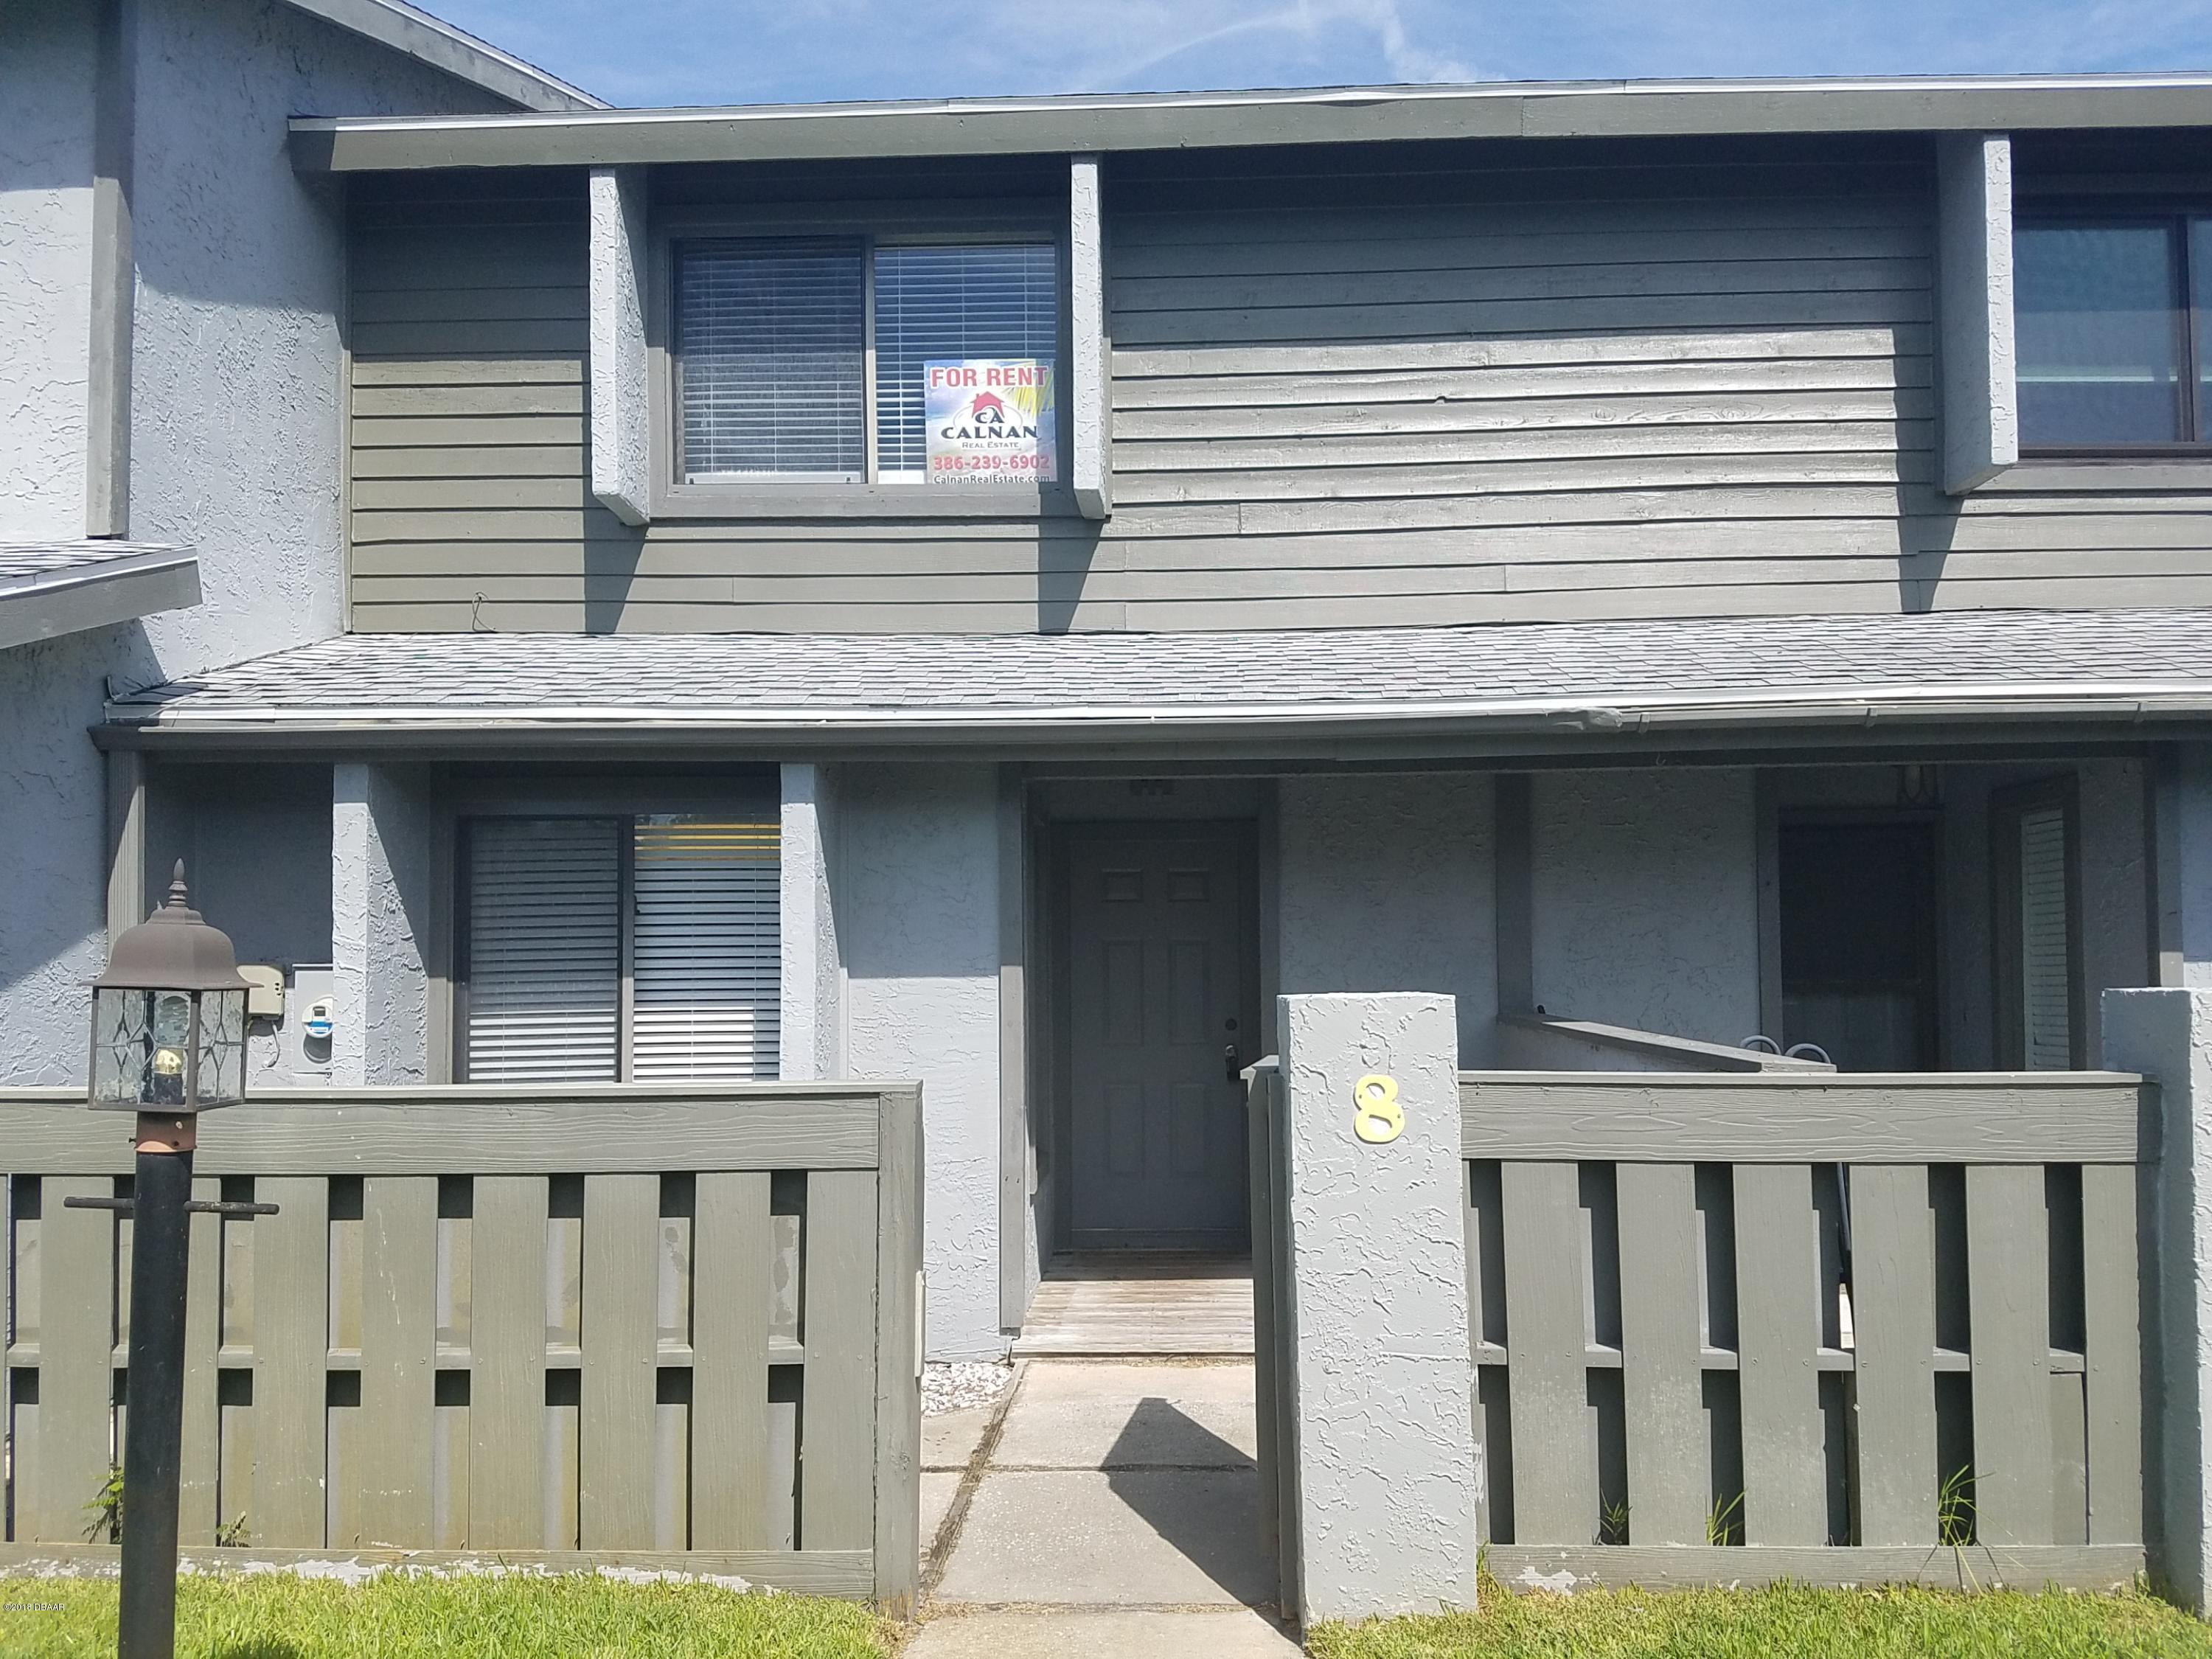 2 bed / 2 5 baths Rental For Rent in Ormond Beach for $1,500